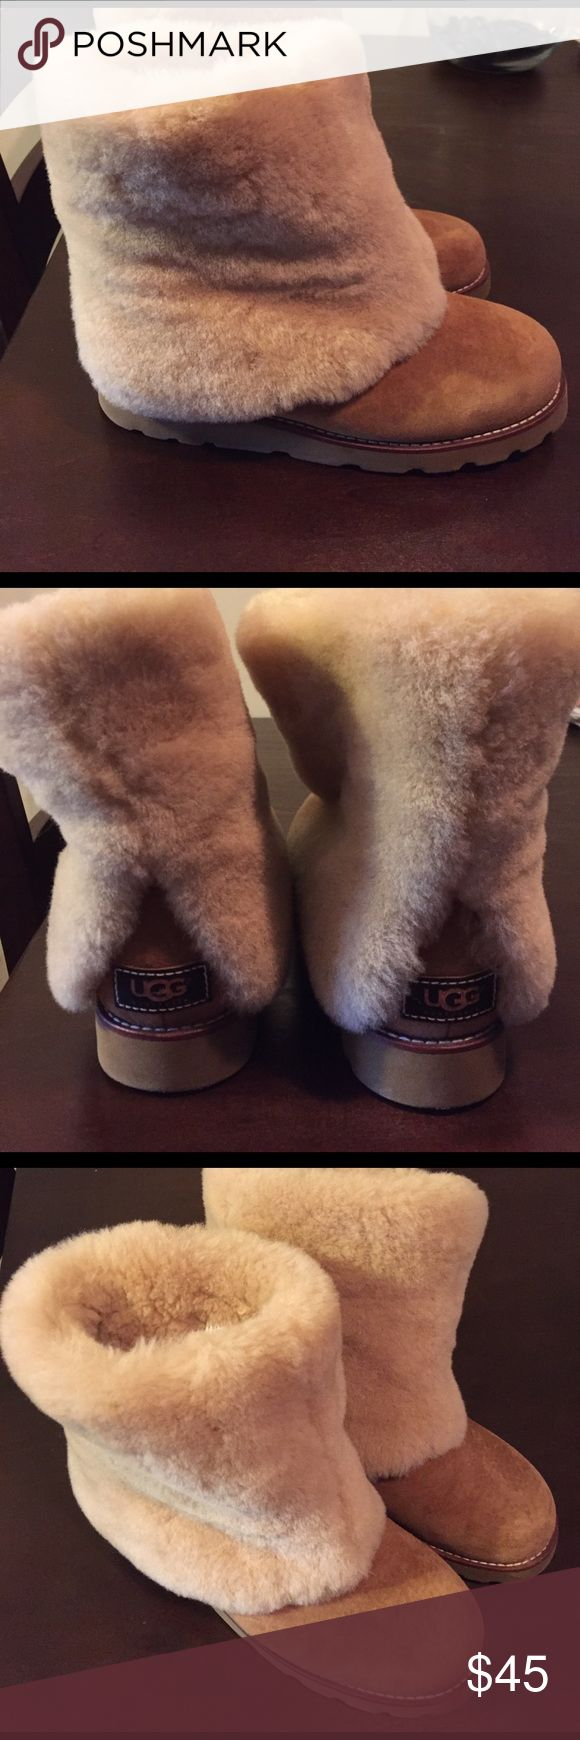 UGG Australia Boot Worn only a few times. UGG Shoes Winter & Rain Boots